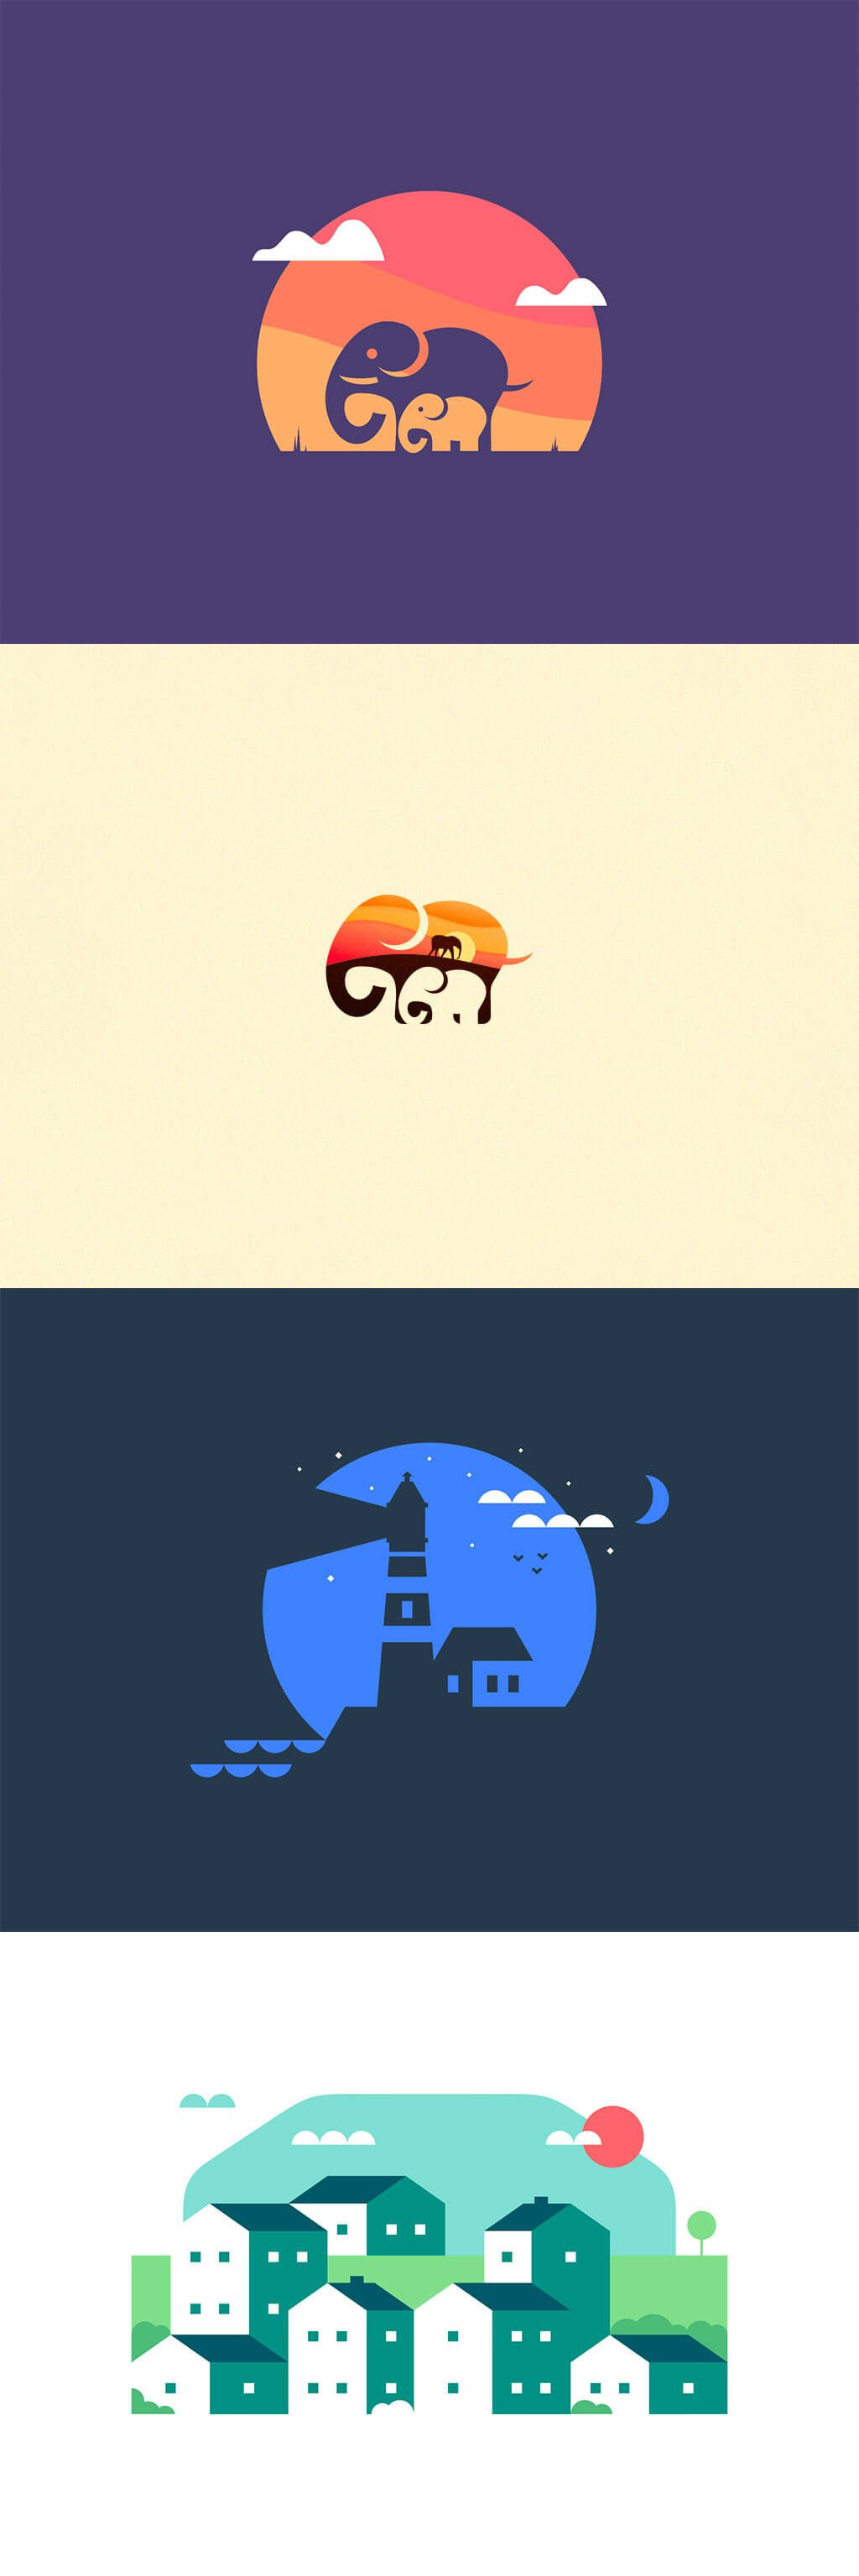 Negative Space Ilustrations by Anthony Gribben